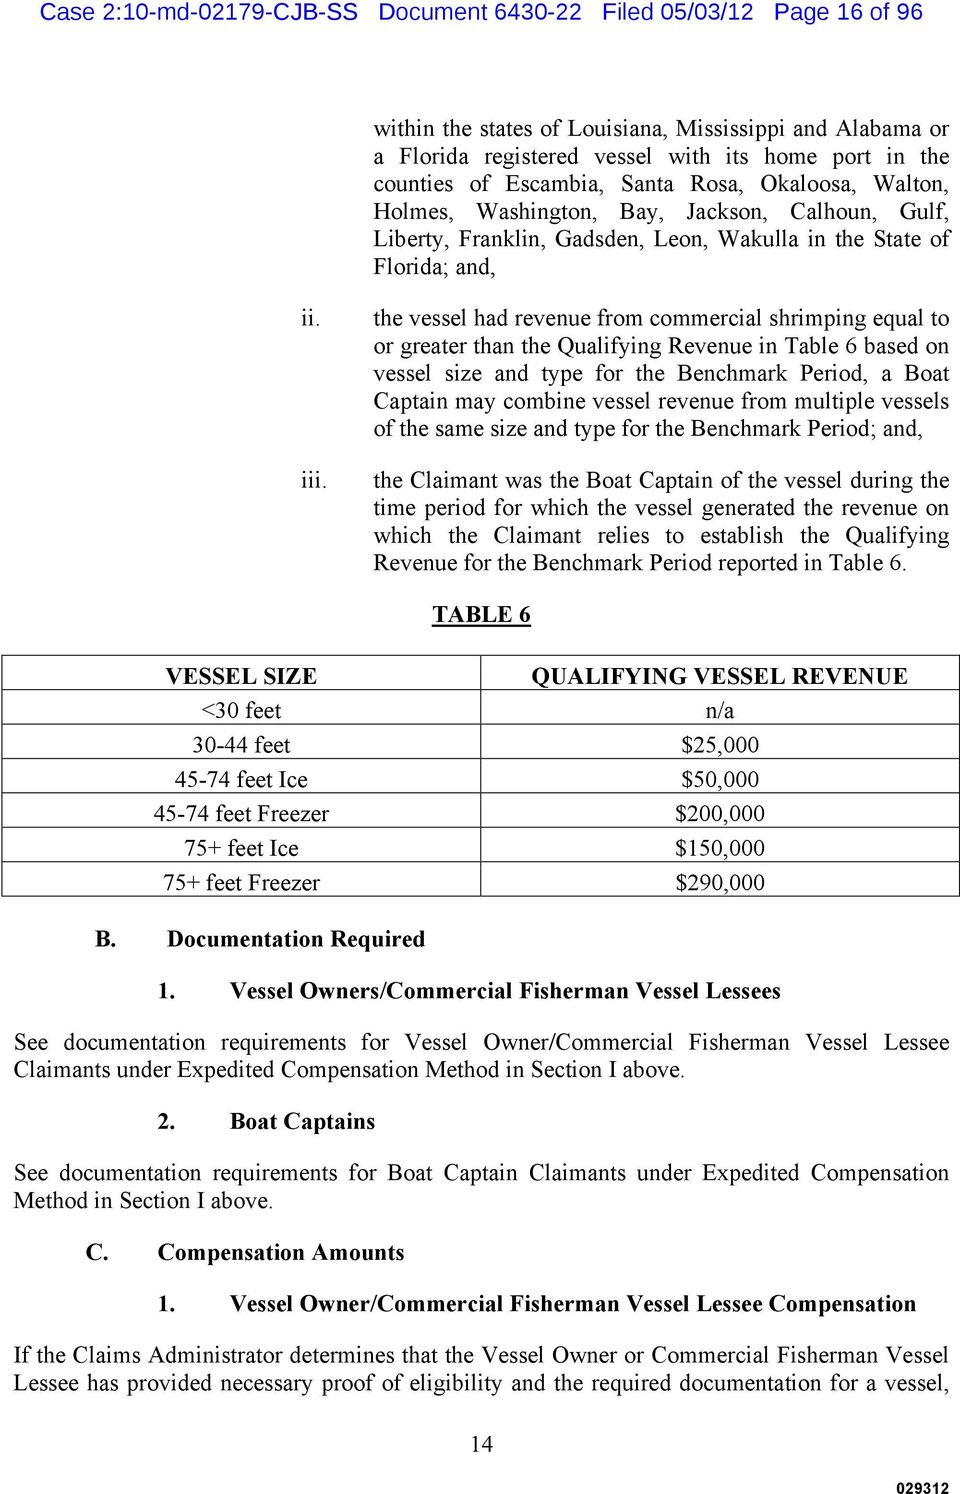 the vessel had revenue from commercial shrimping equal to or greater than the Qualifying Revenue in Table 6 based on vessel size and type for the Benchmark Period, a Boat Captain may combine vessel